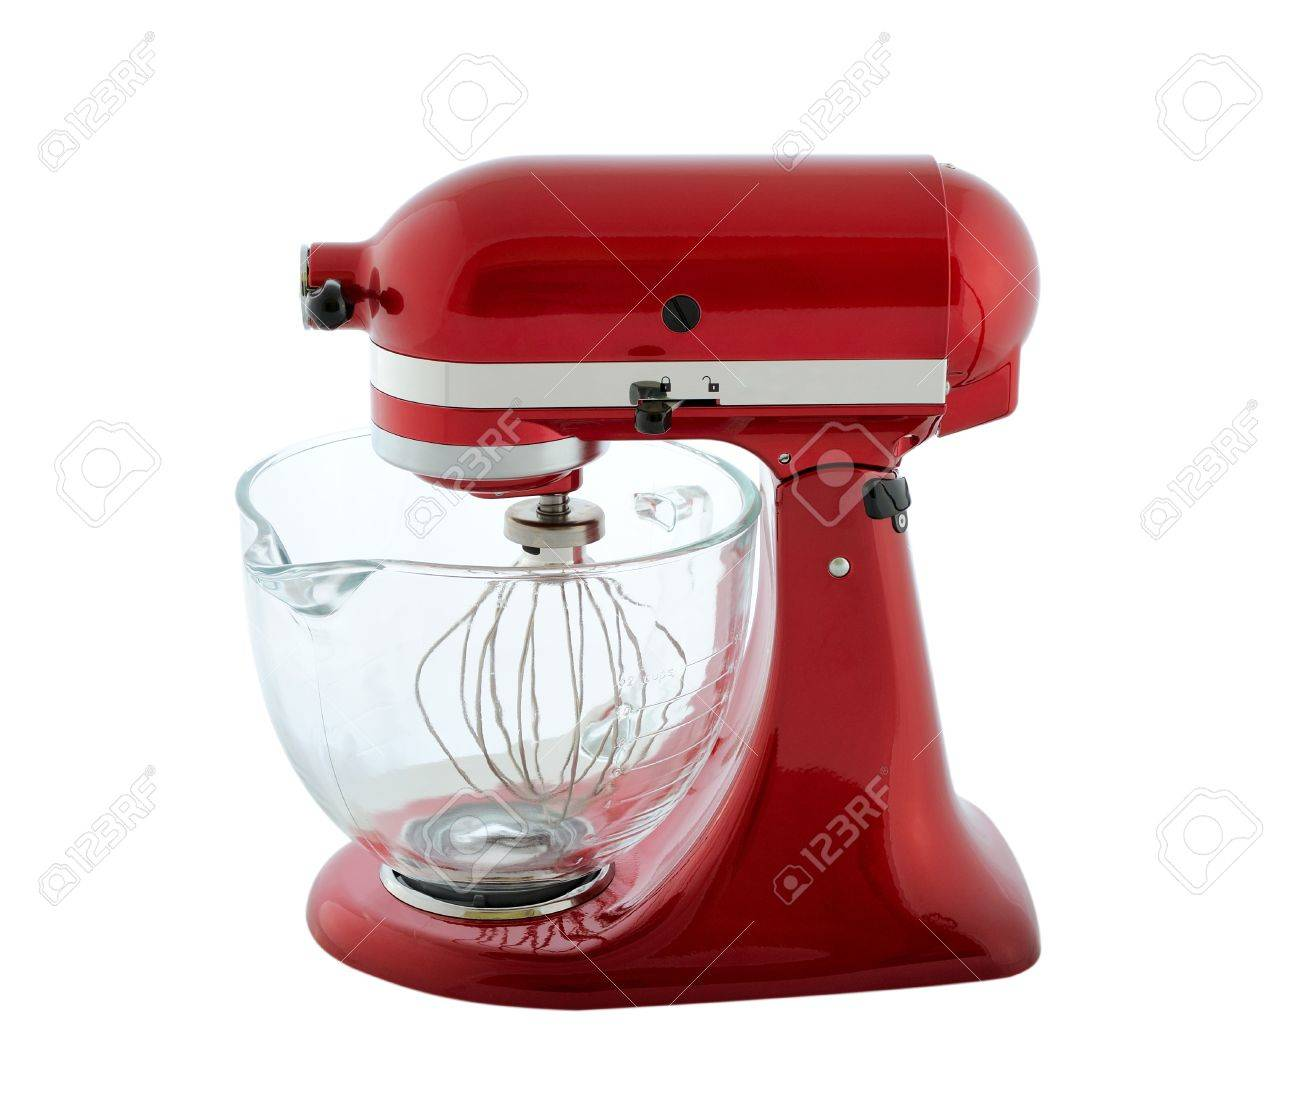 Kitchen Appliances - Red Planetary Mixer With A Transparent Bowl ...